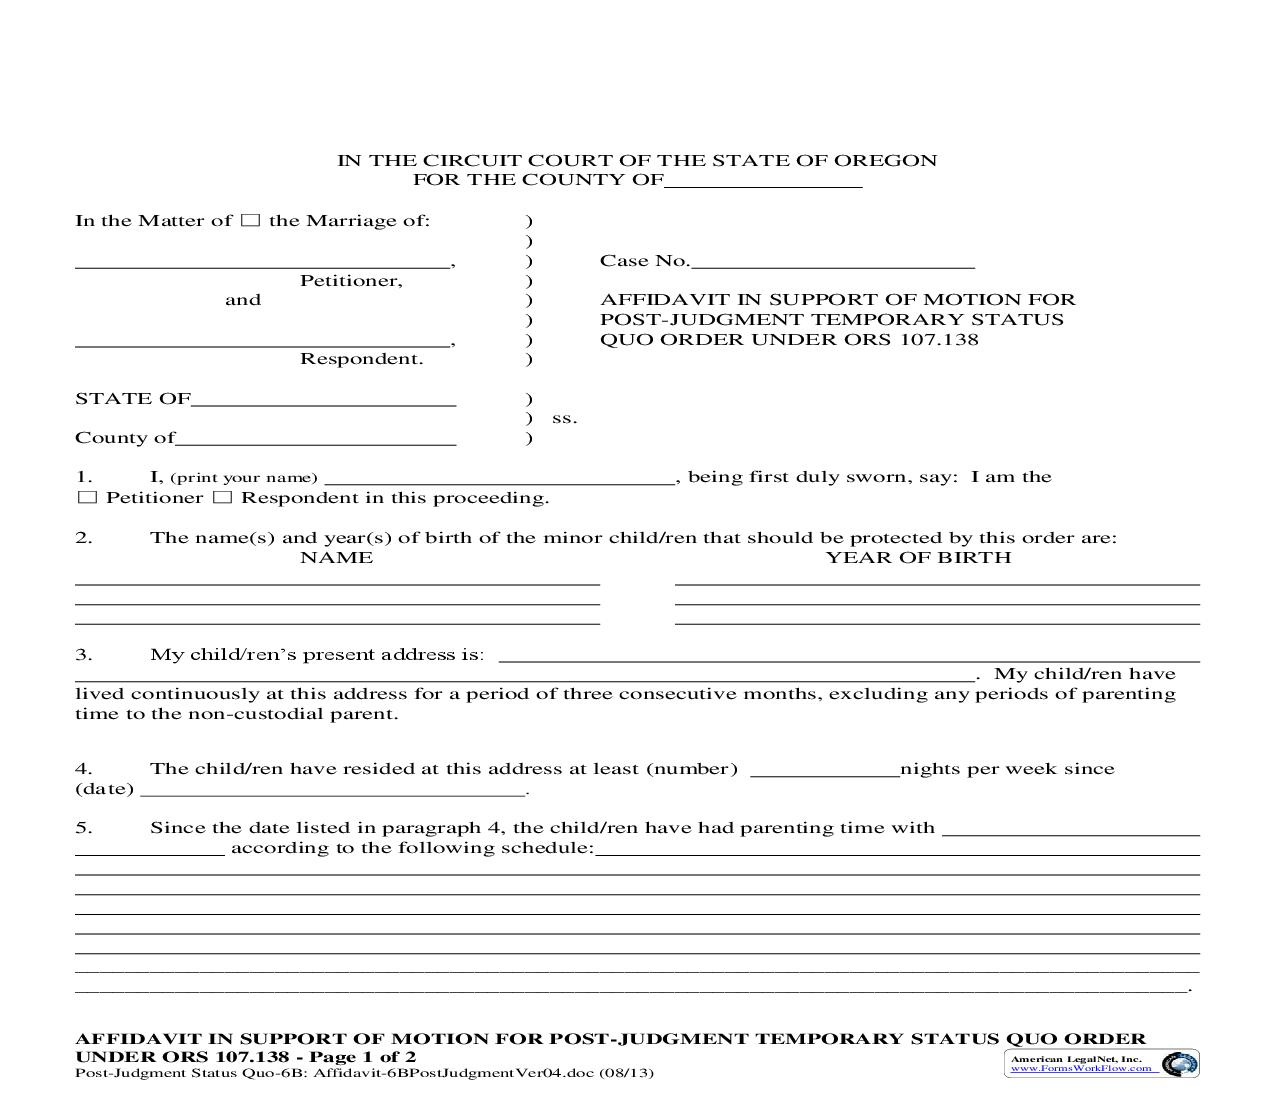 Affidavit In Support Of Motion For Post-Judgment Temporary Status Quo Order (6B)   Pdf Fpdf Doc Docx   Oregon